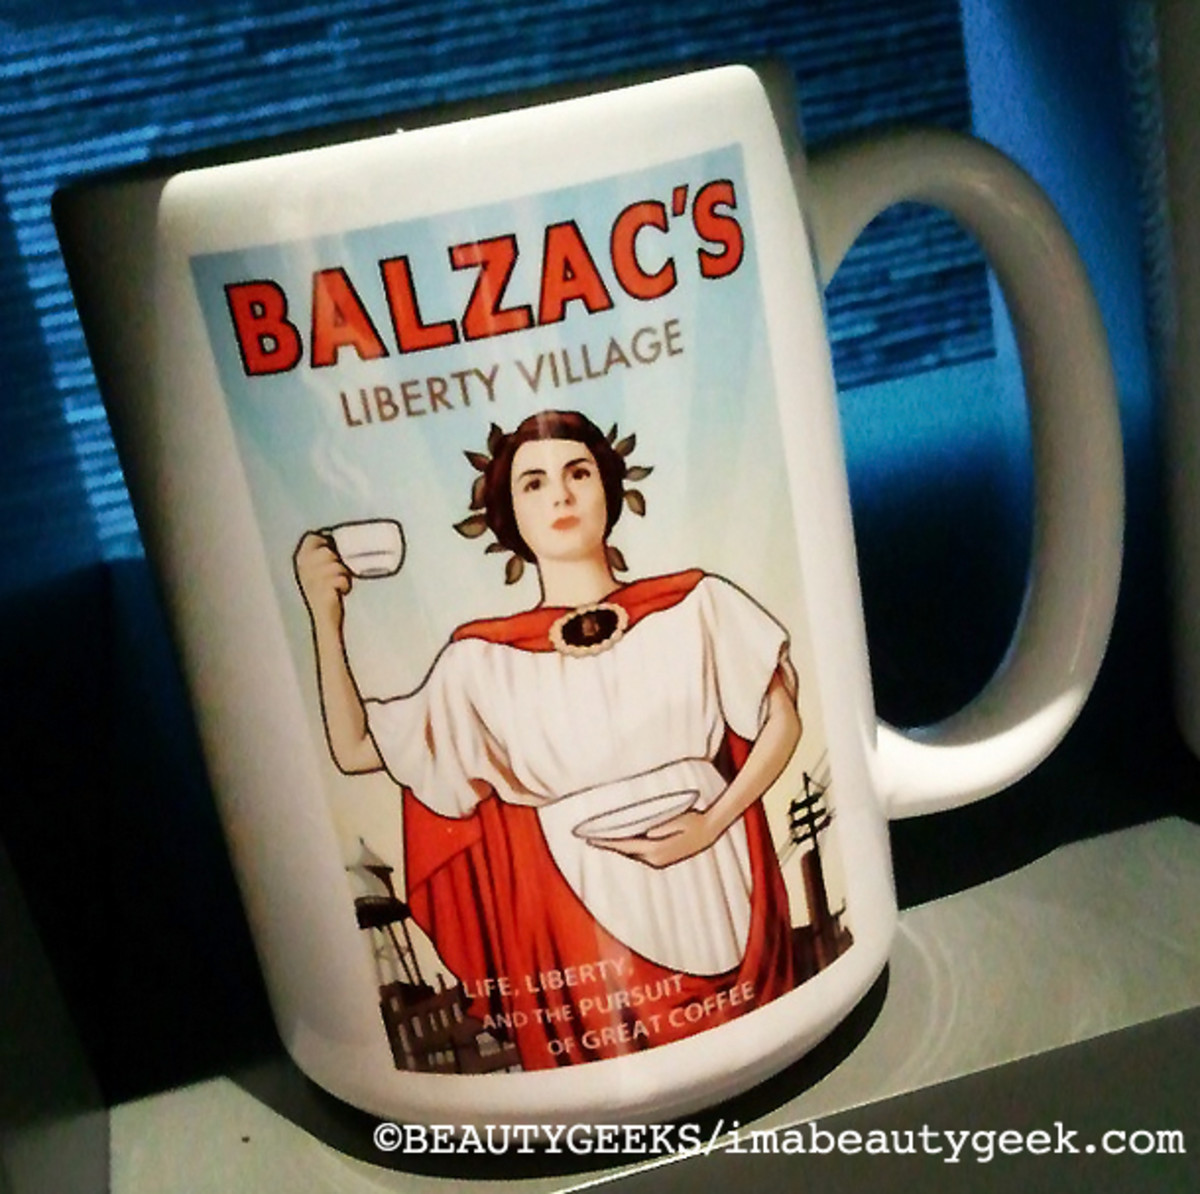 TIFF media lounge_Balzac's coffee